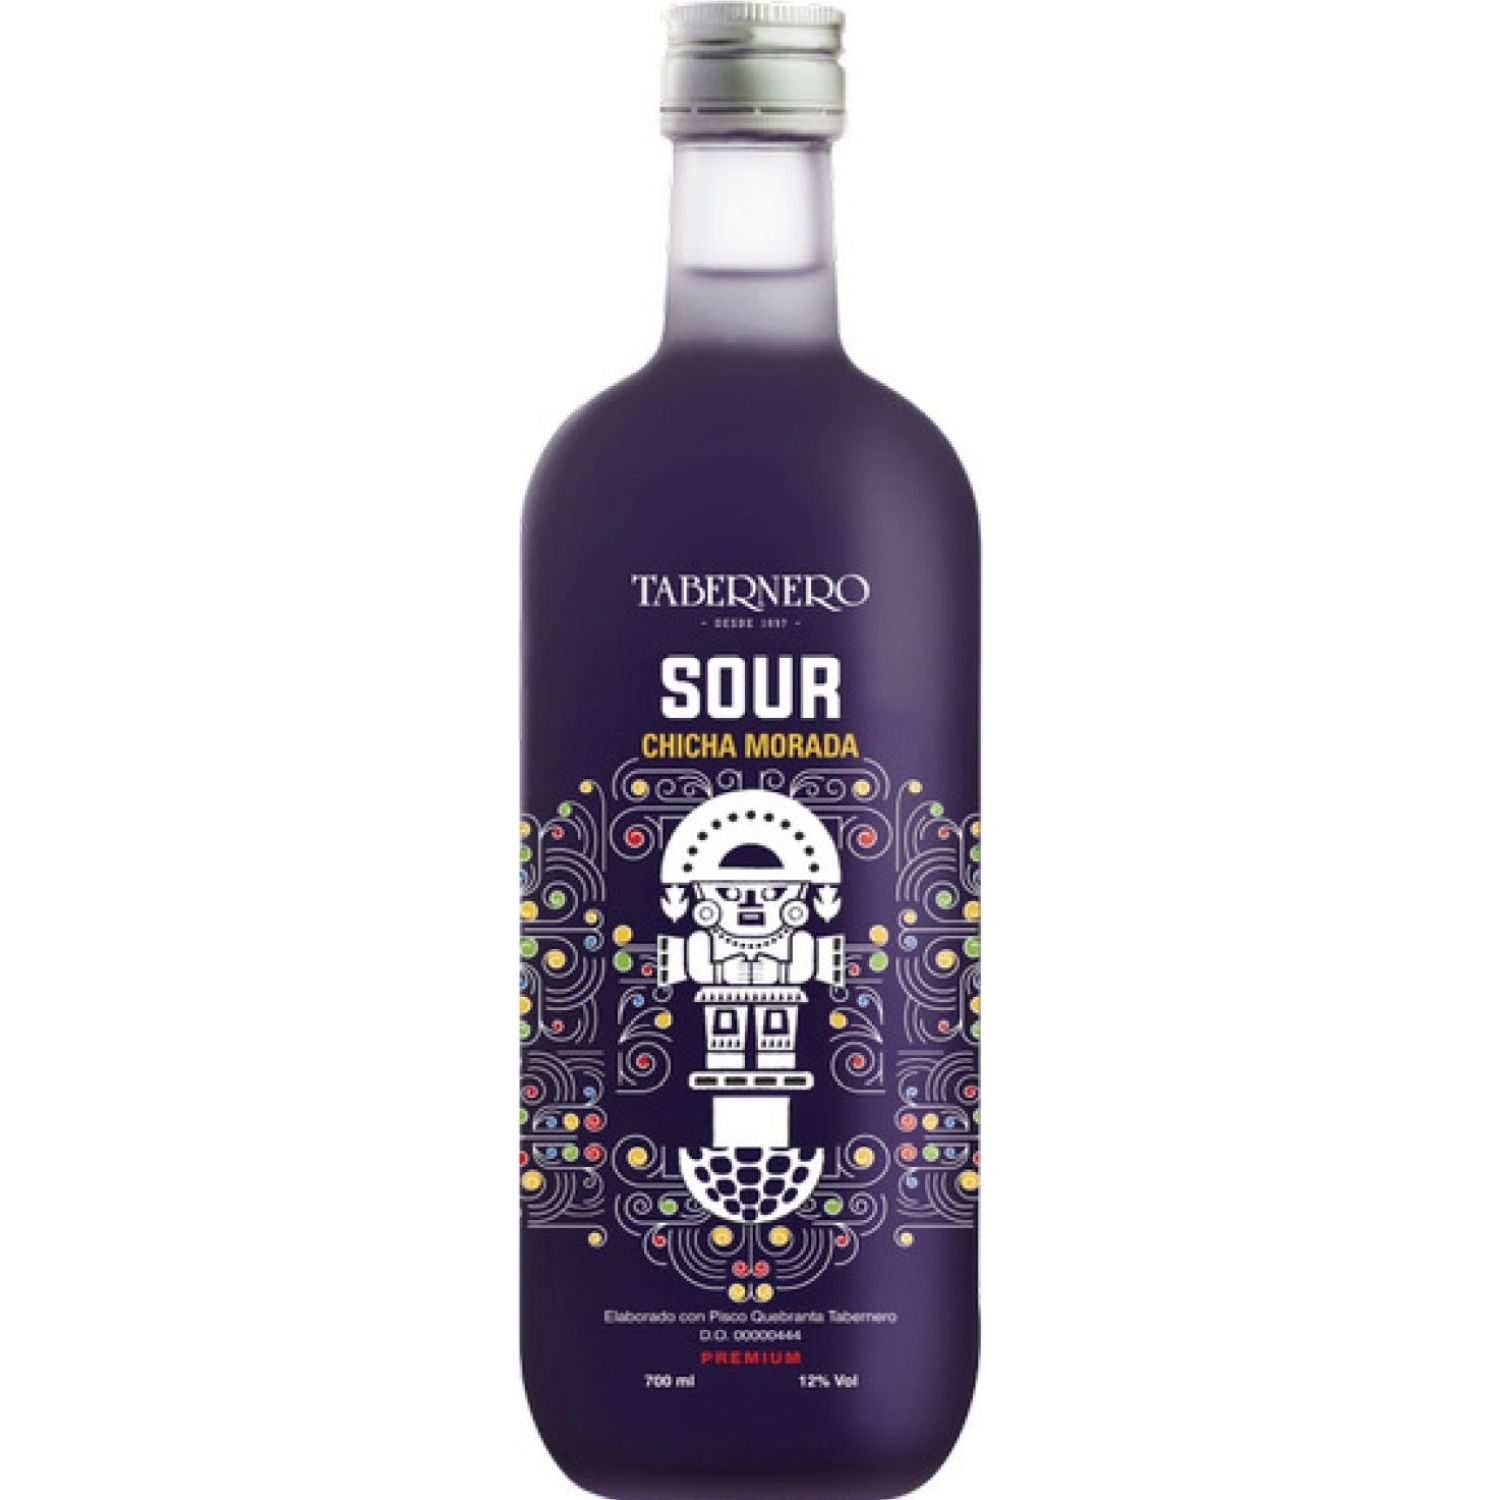 TABERNERO Pisco Sour Chicha Morada 700ml Sin color Licores preparados